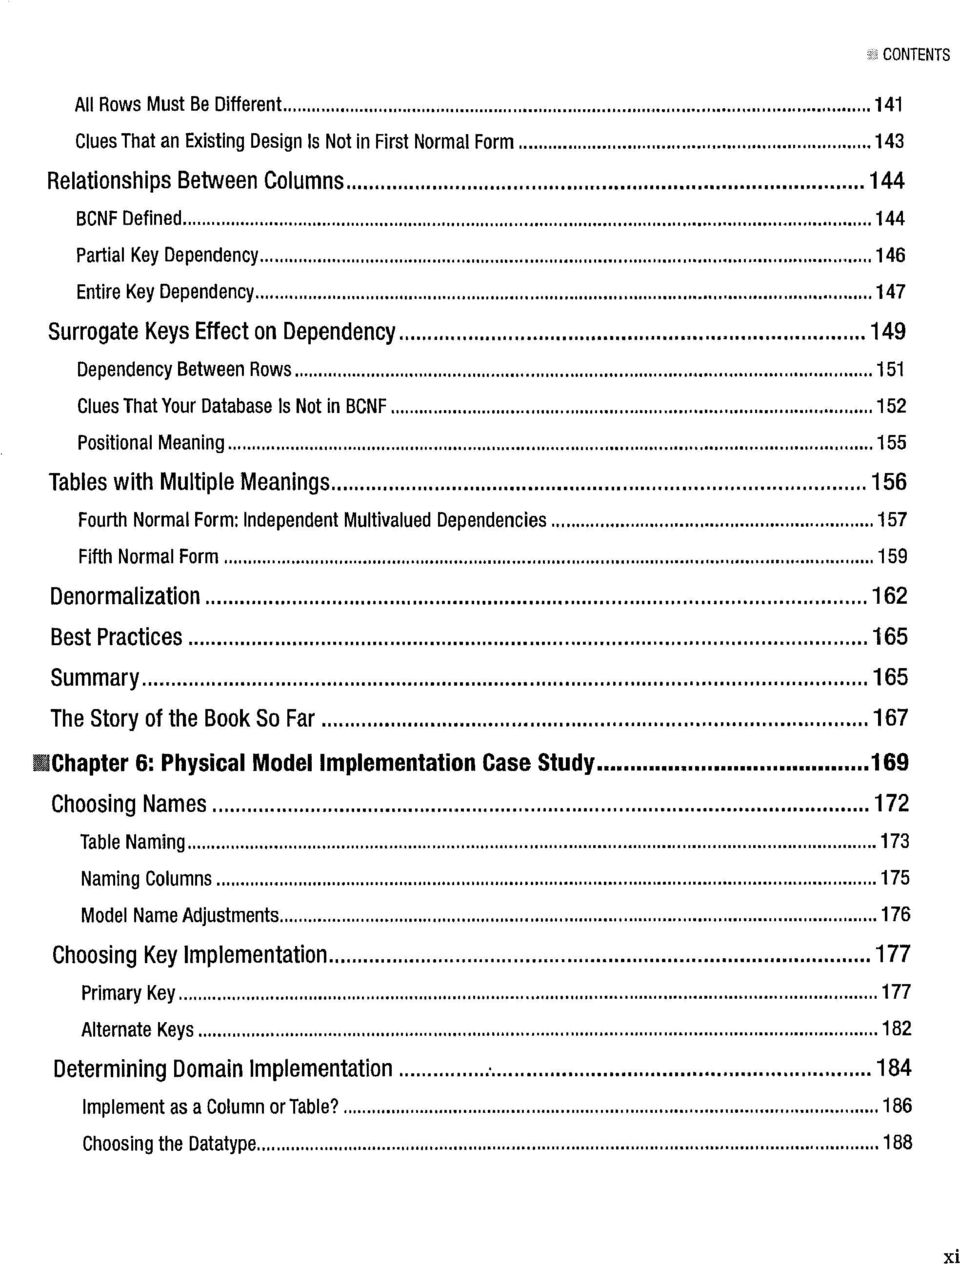 Form: Independent Multivalued Dependencies 157 Fifth Normal Form 159 Denormalization 162 Best Practices 165 Summary 165 The Story of the Book So Far 167 Chapter 6: Physical Model Implementation Case